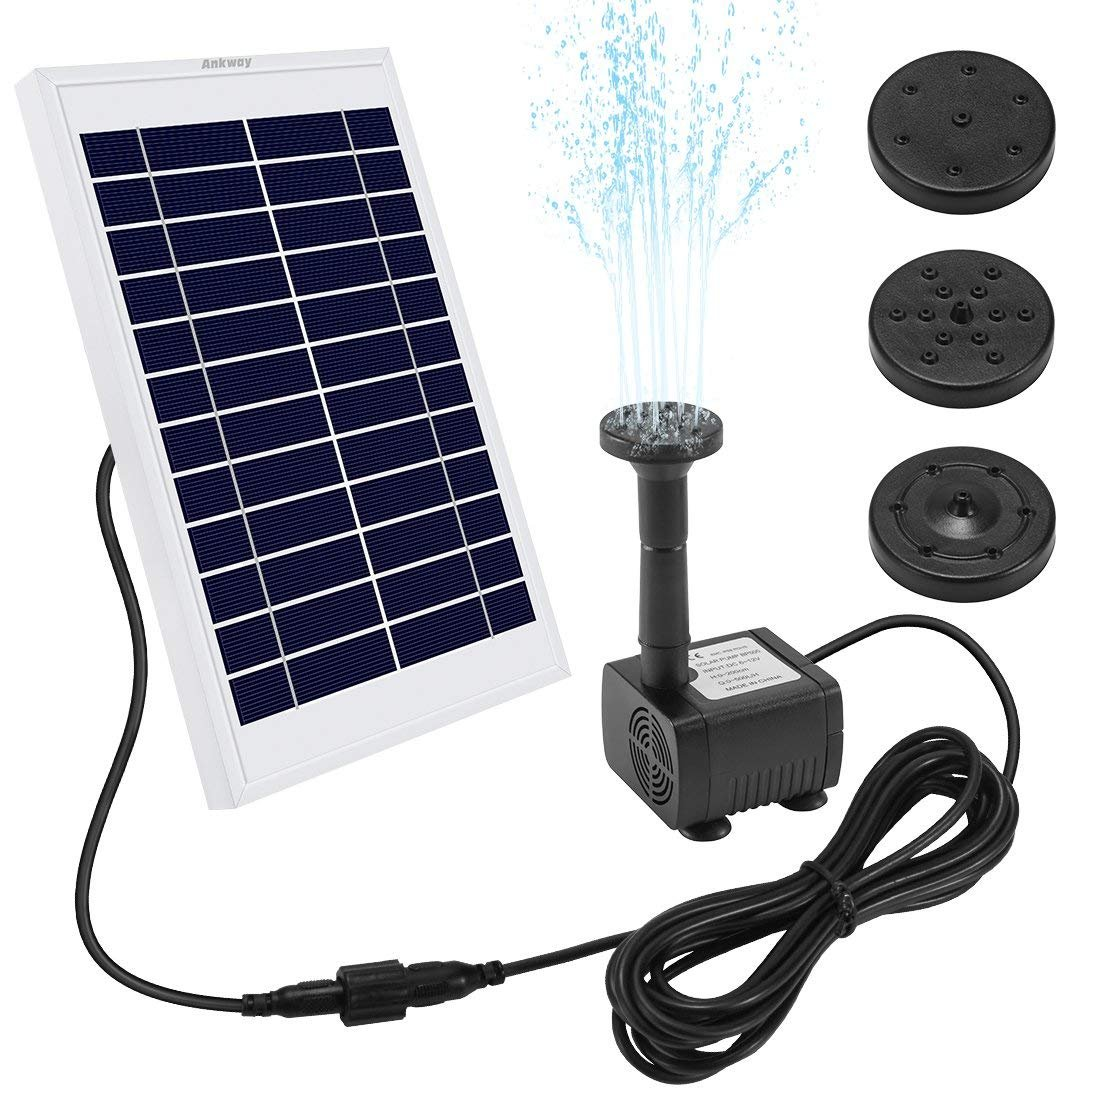 Ankway Solar Fountain Pump 5W 128